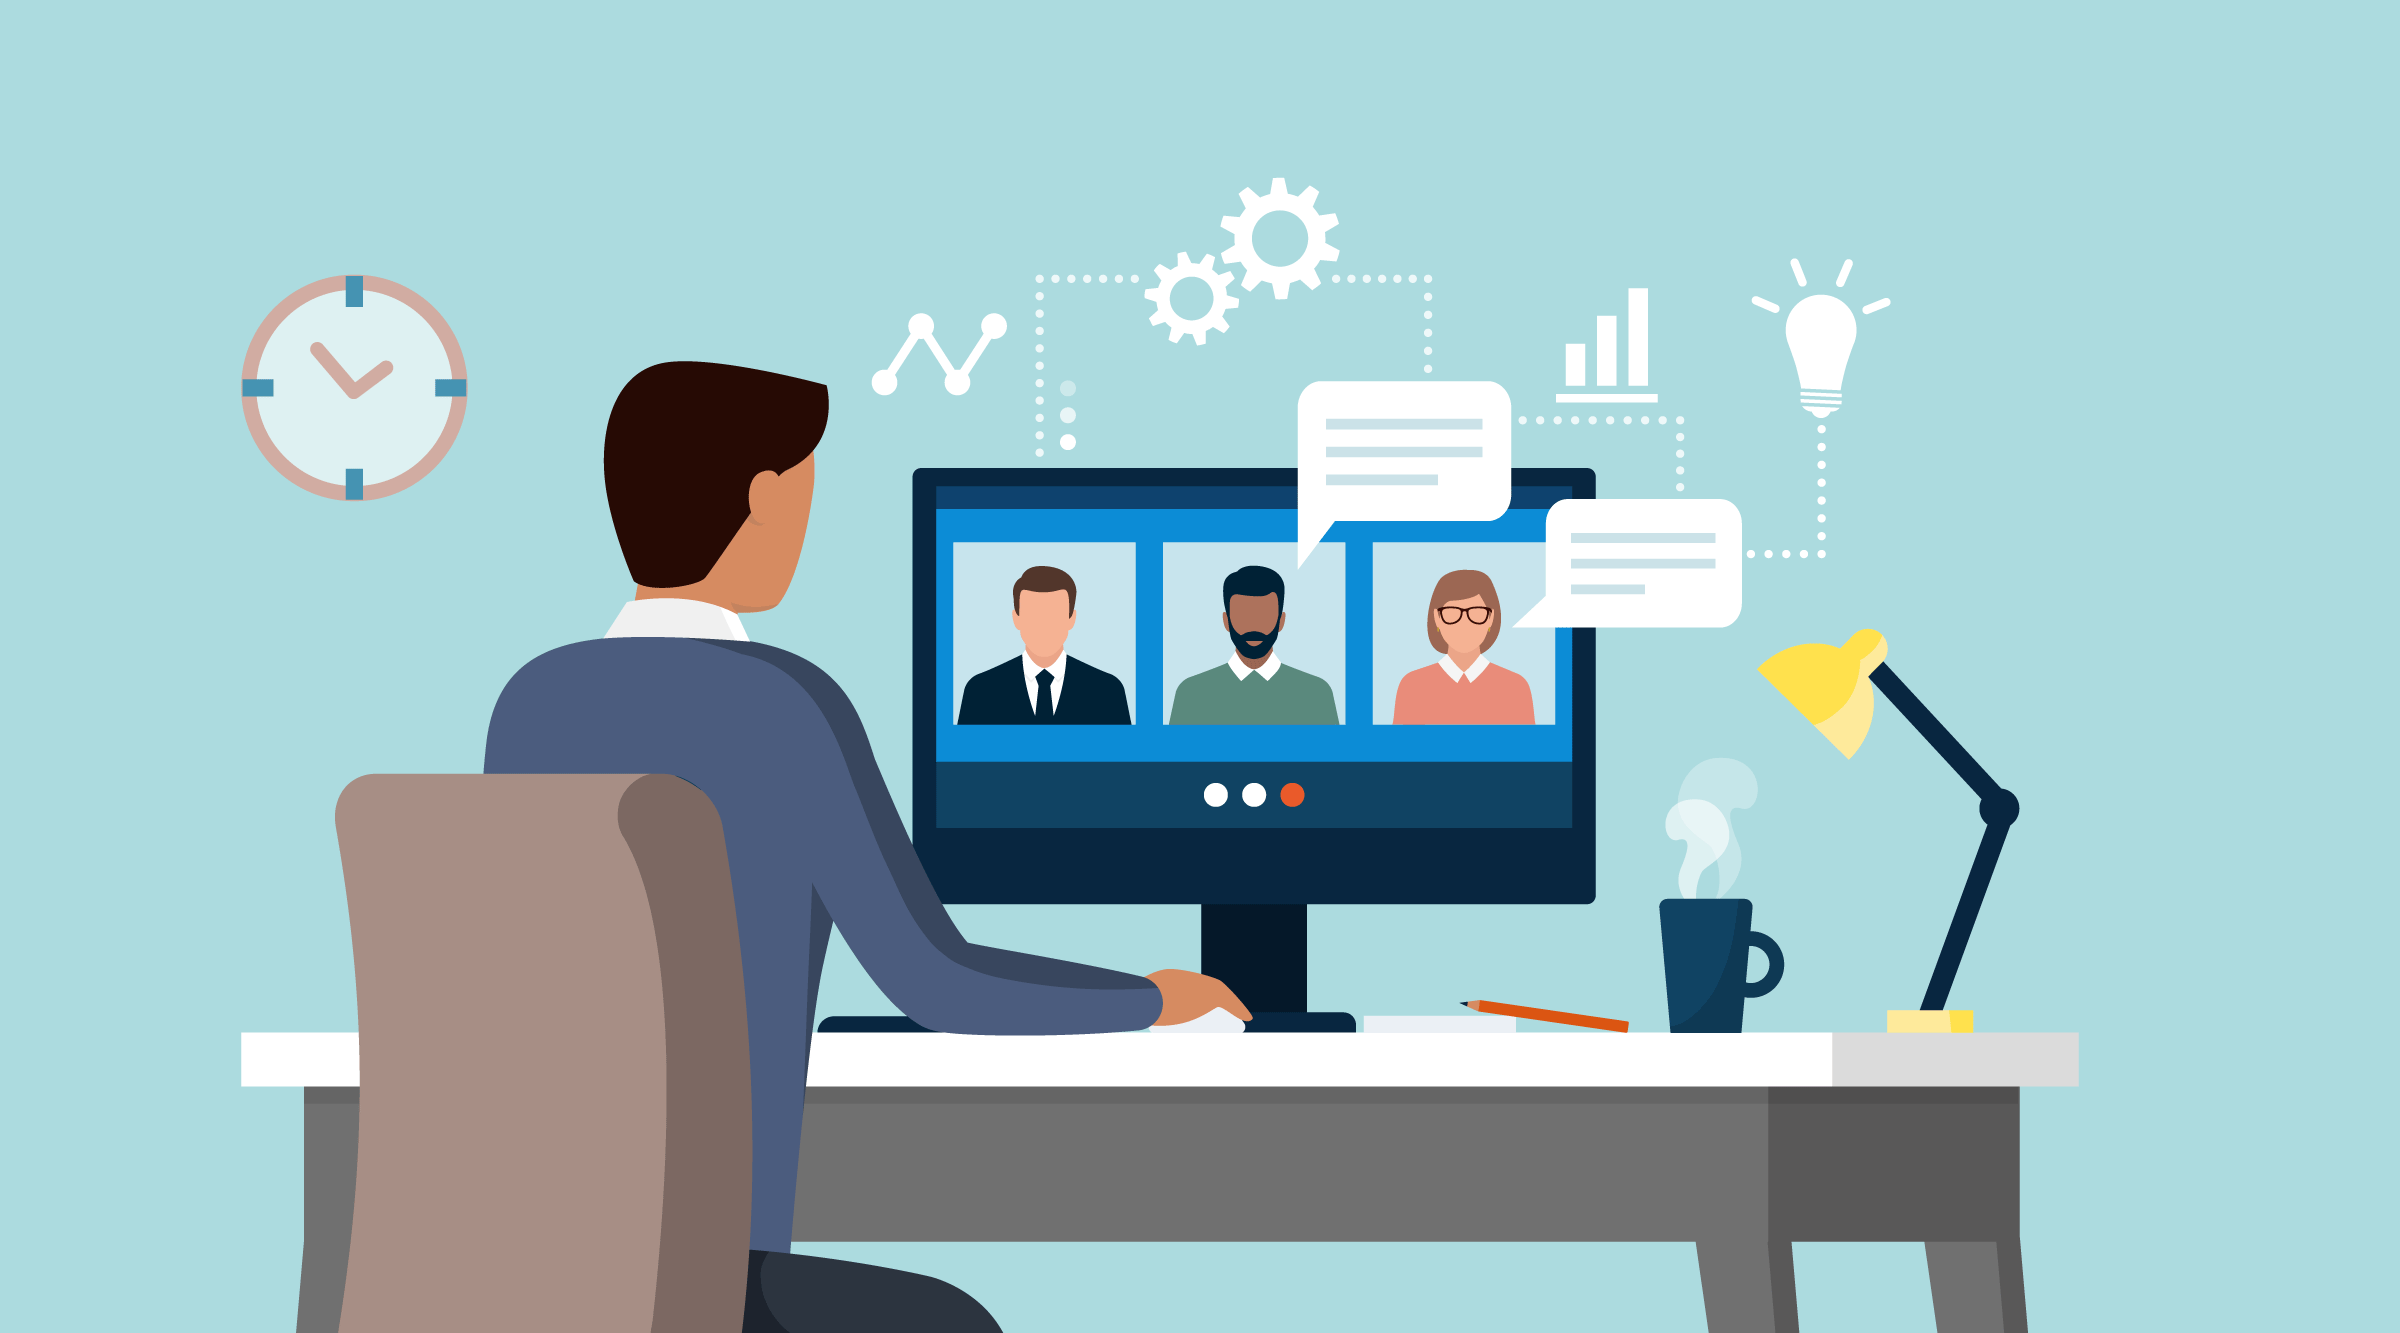 Illustration of business video conference